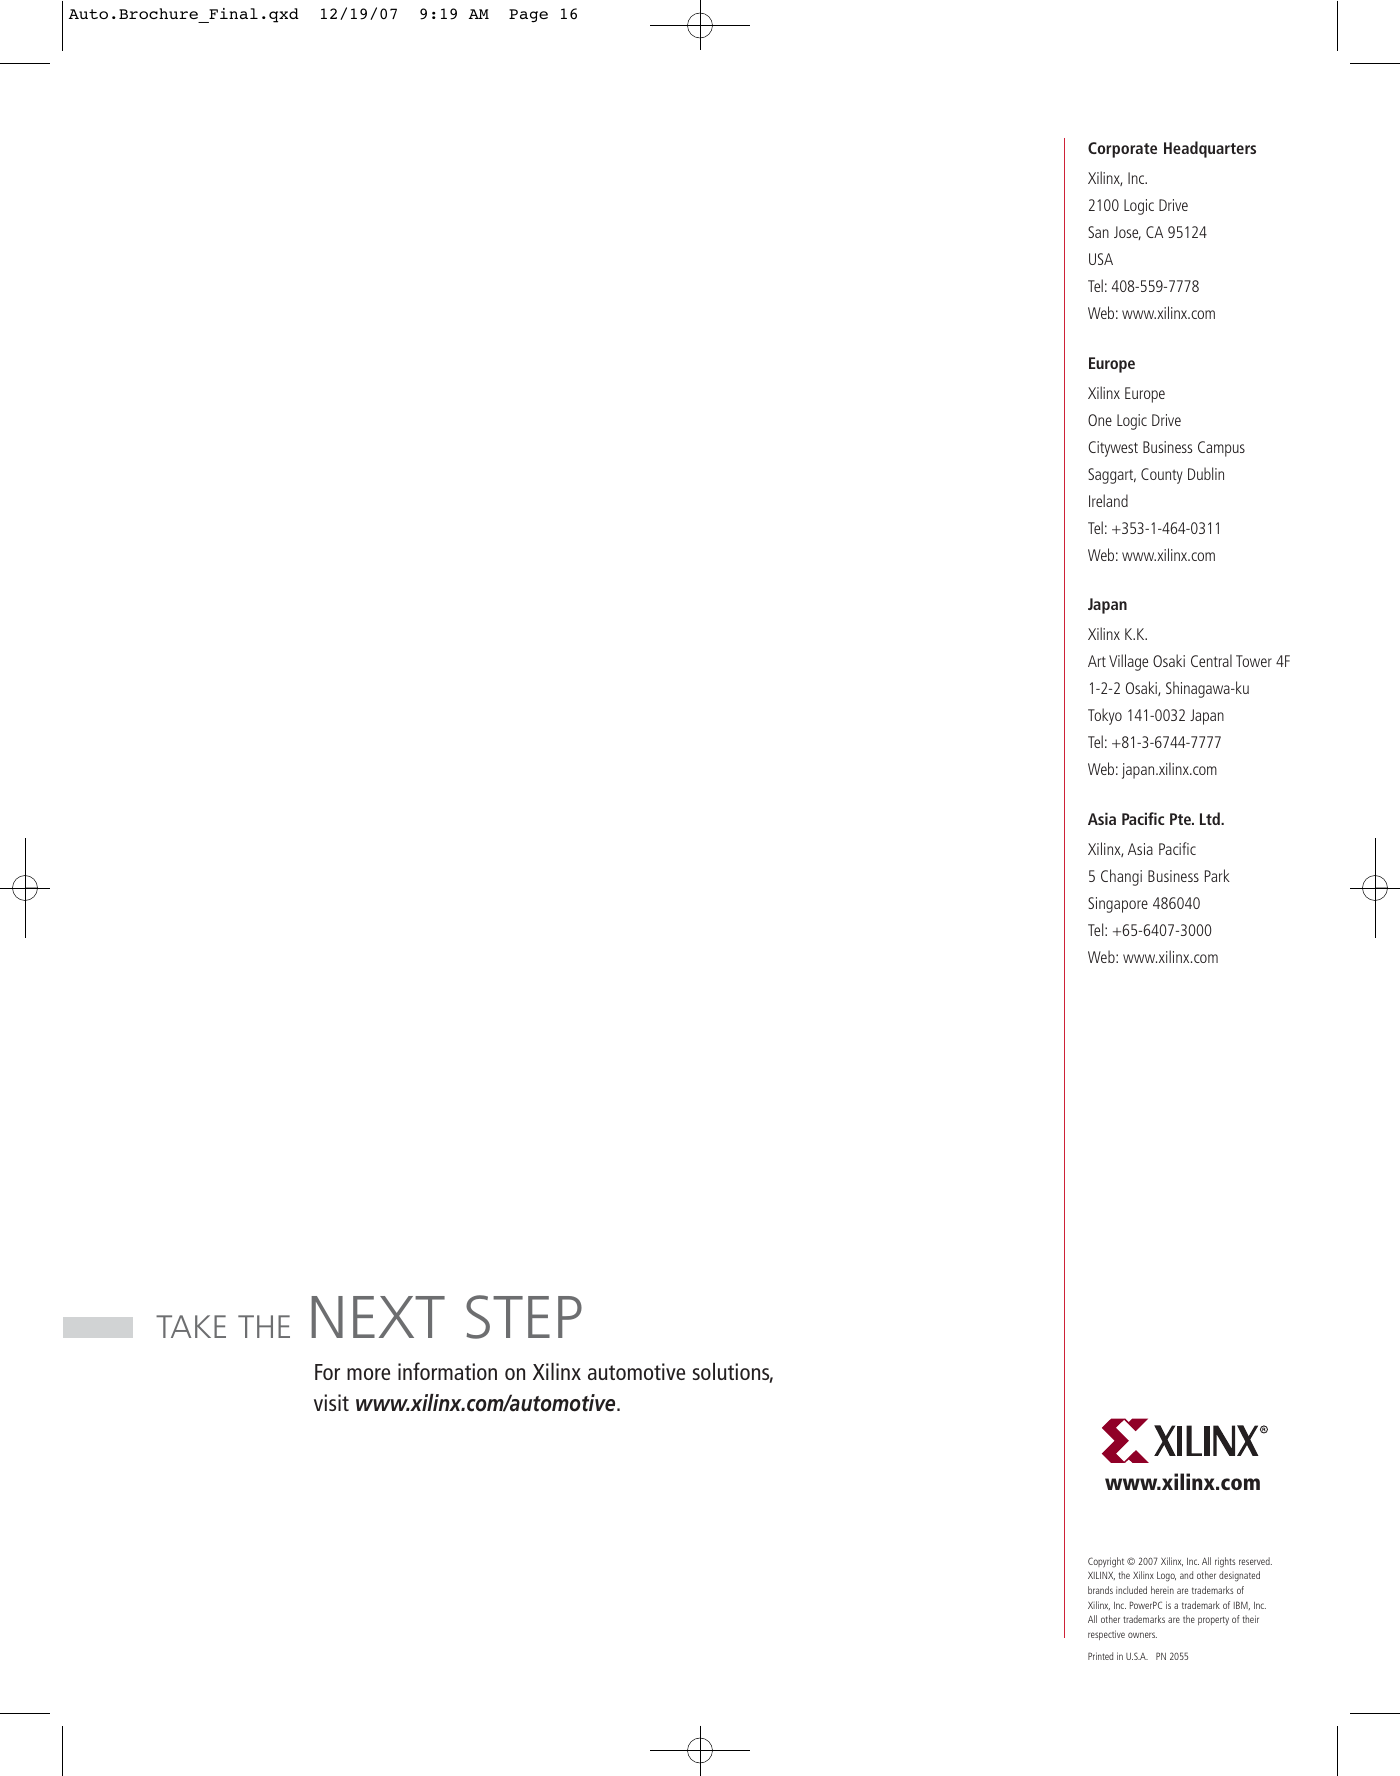 Xilinx Automotive Brochure User Manual To The 666f57c7 b26d